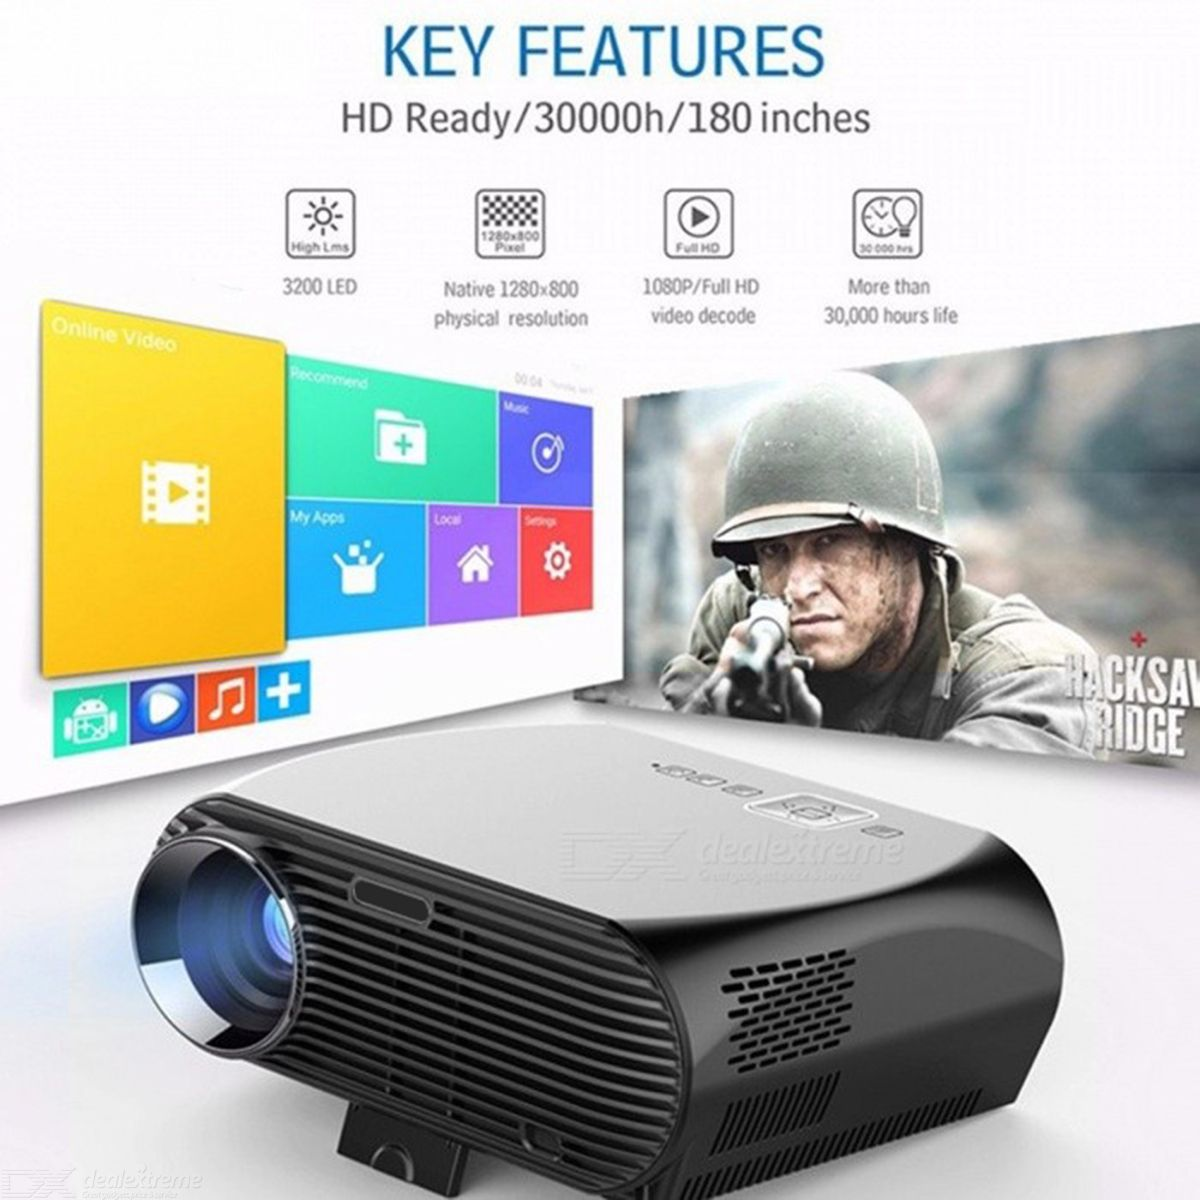 GP100 Projector Full HD 3200 Lumen 1080P WiFi Bluetooth LED LCD Home Theater Cinema Video Projector Proyector black